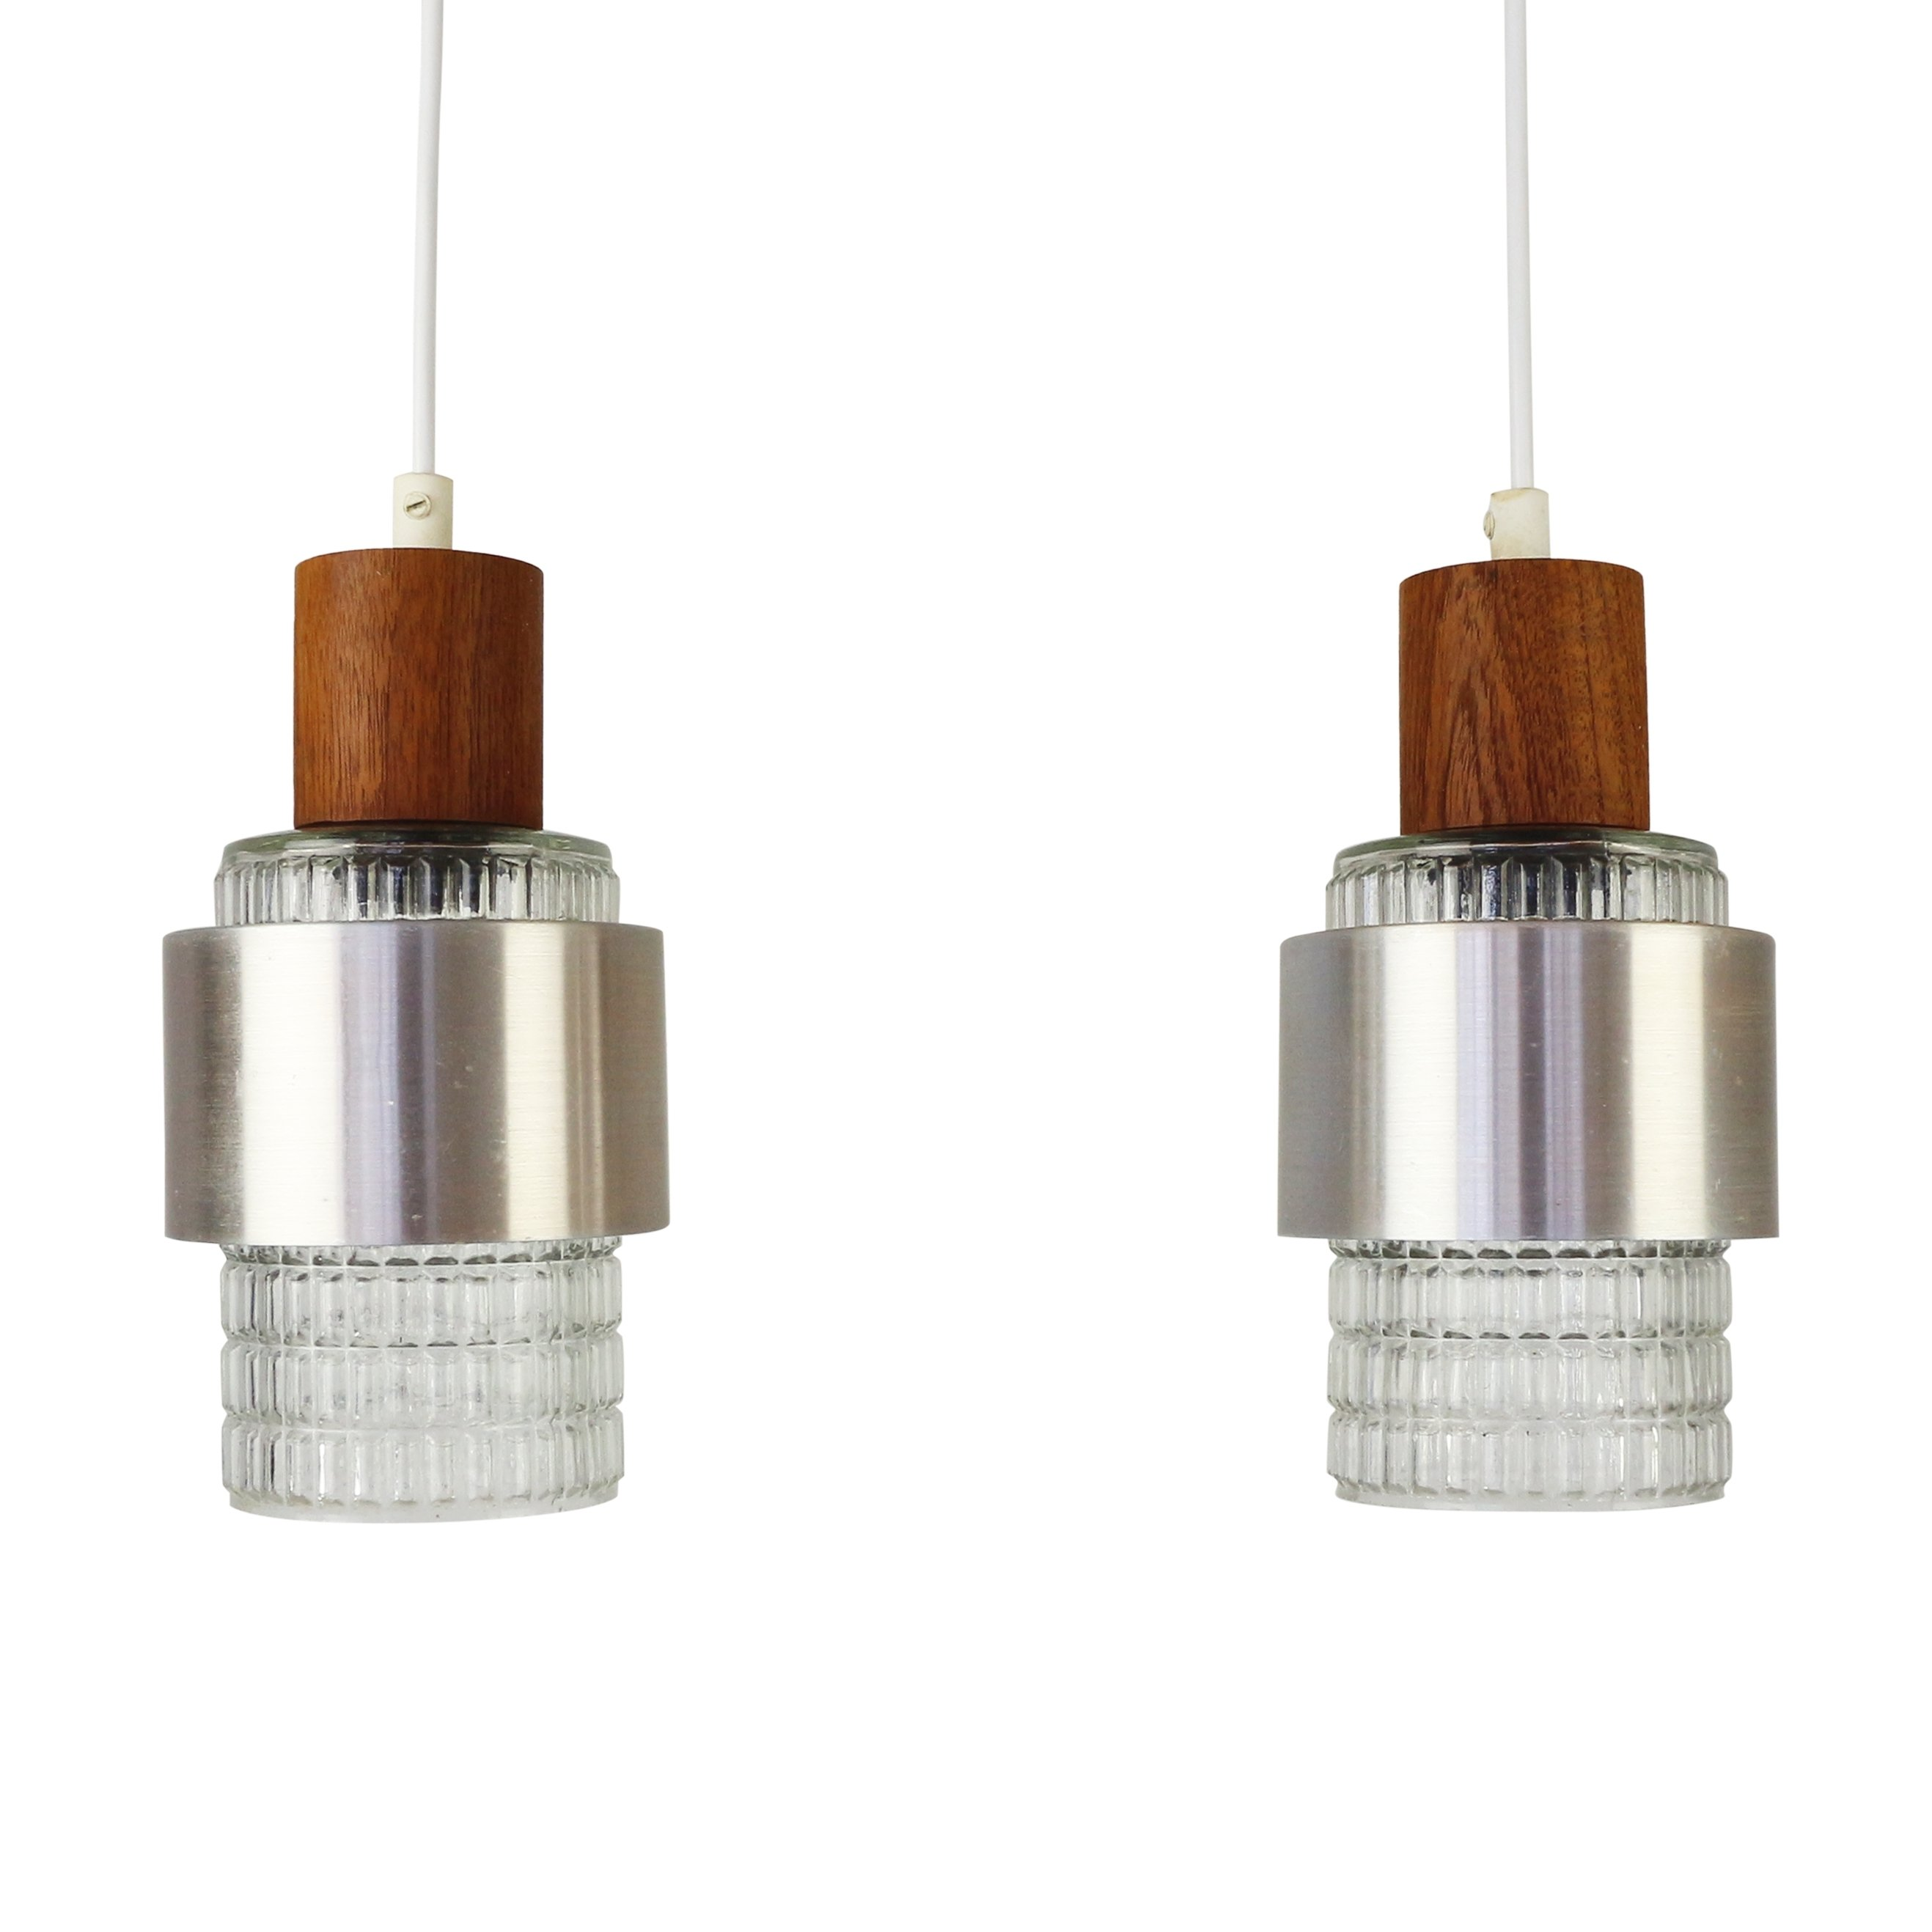 Pair of danish design pendant lights 1960s 63558 pair of danish design pendant lights 1960s mozeypictures